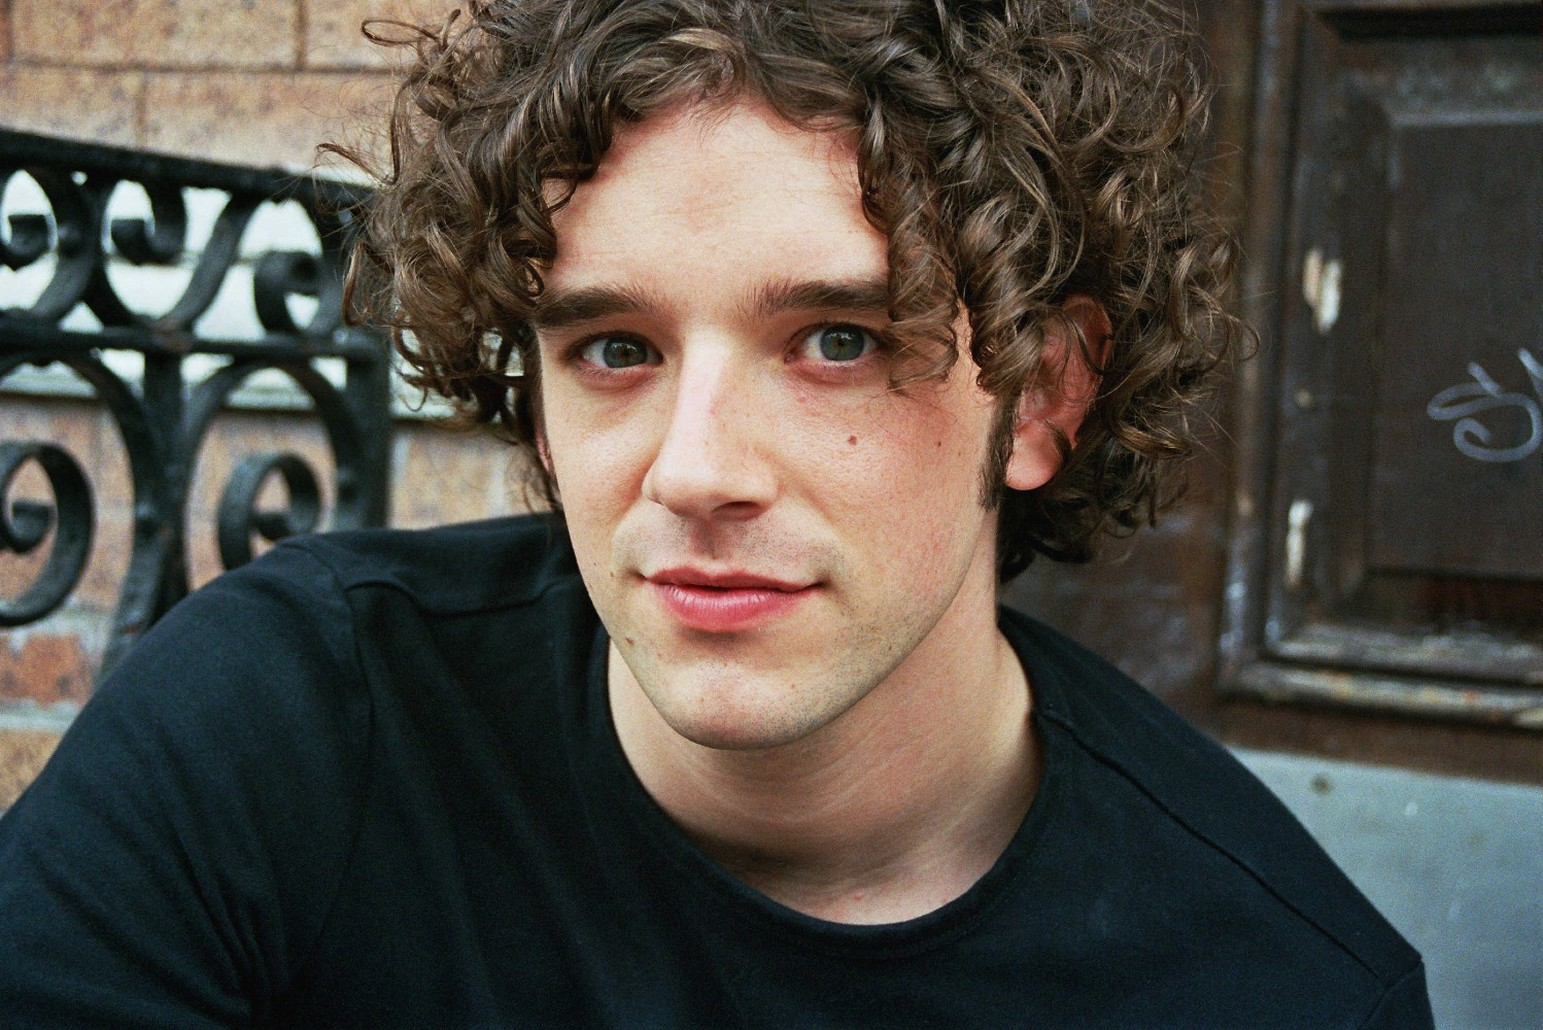 Curly Hairstyles For Men-men-curly-hair-1.jpg